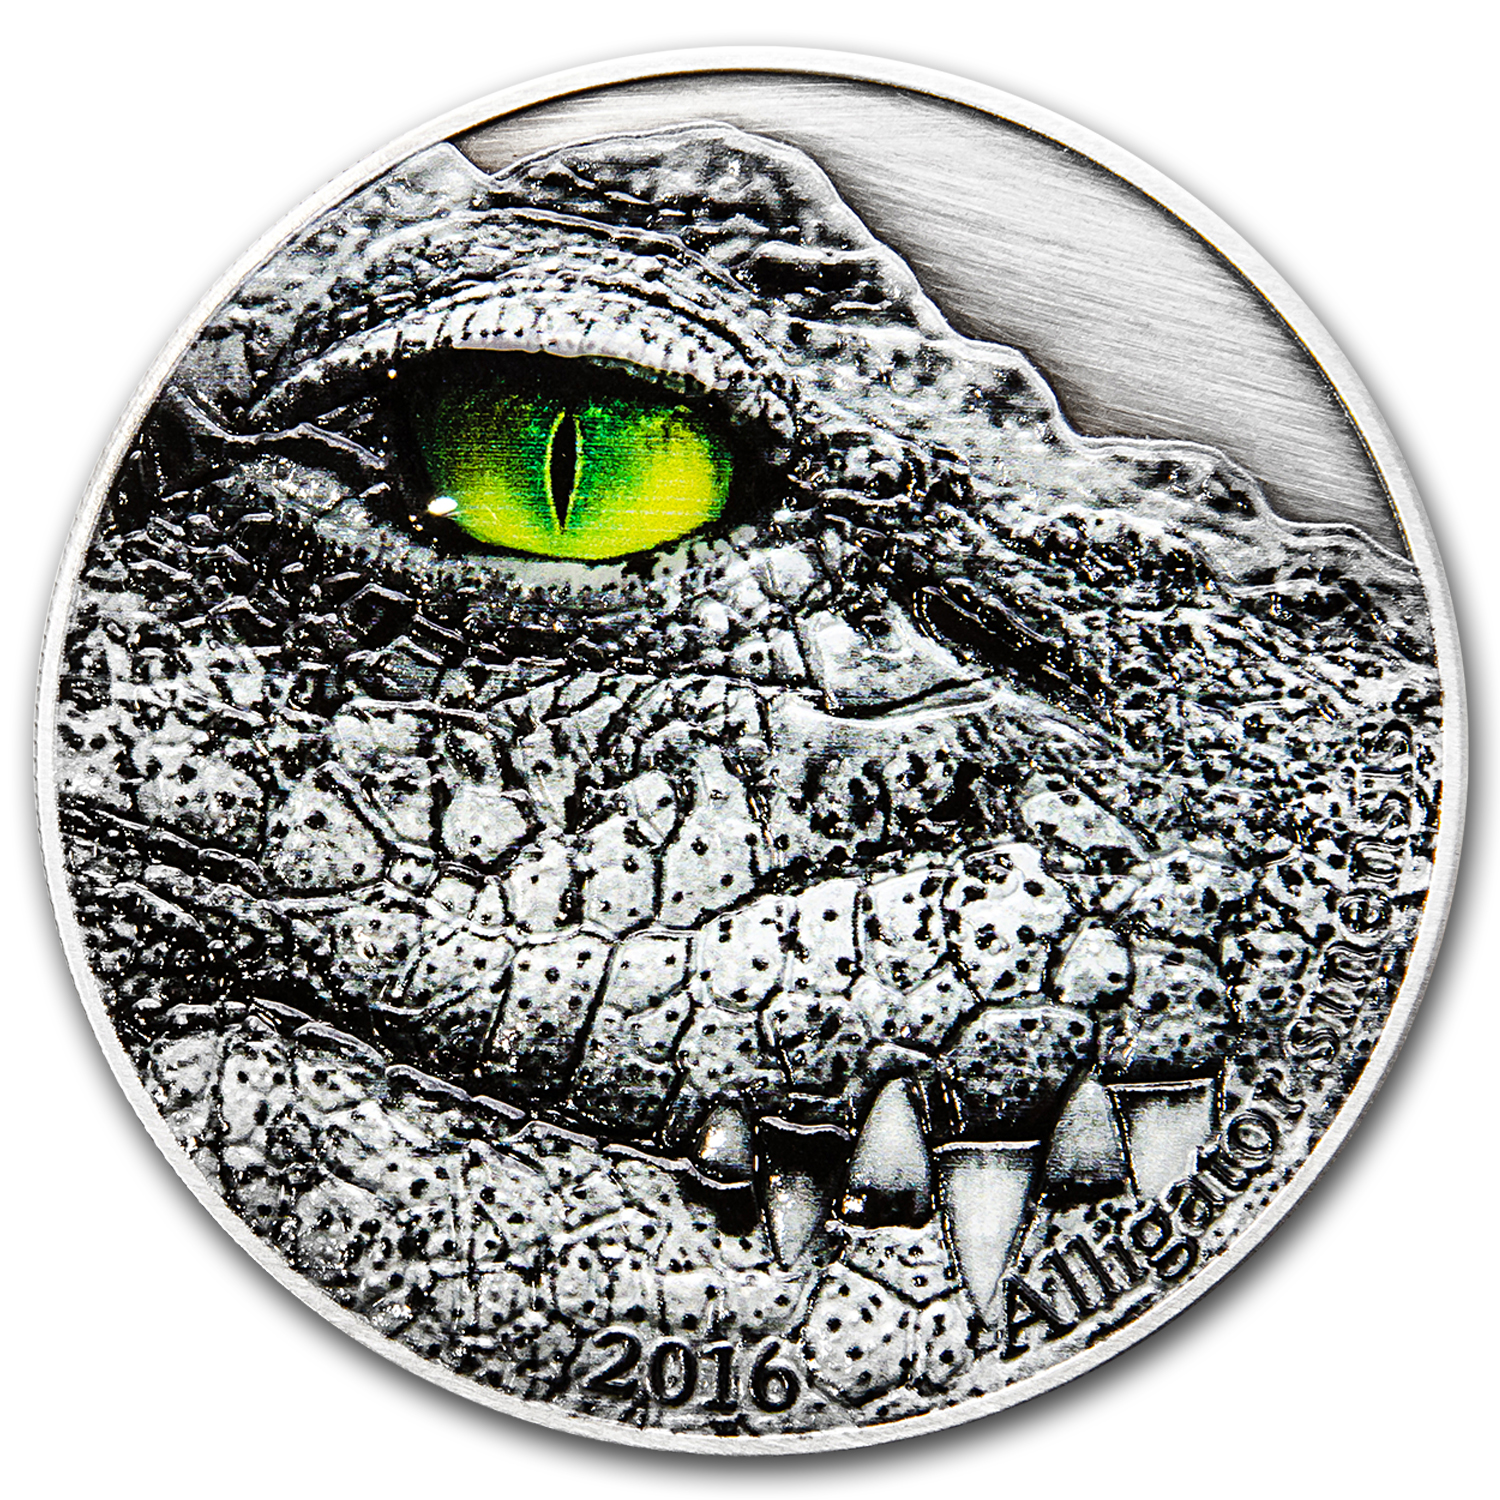 2016 Congo 2 oz Silver Nature's Eyes Chinese Alligator